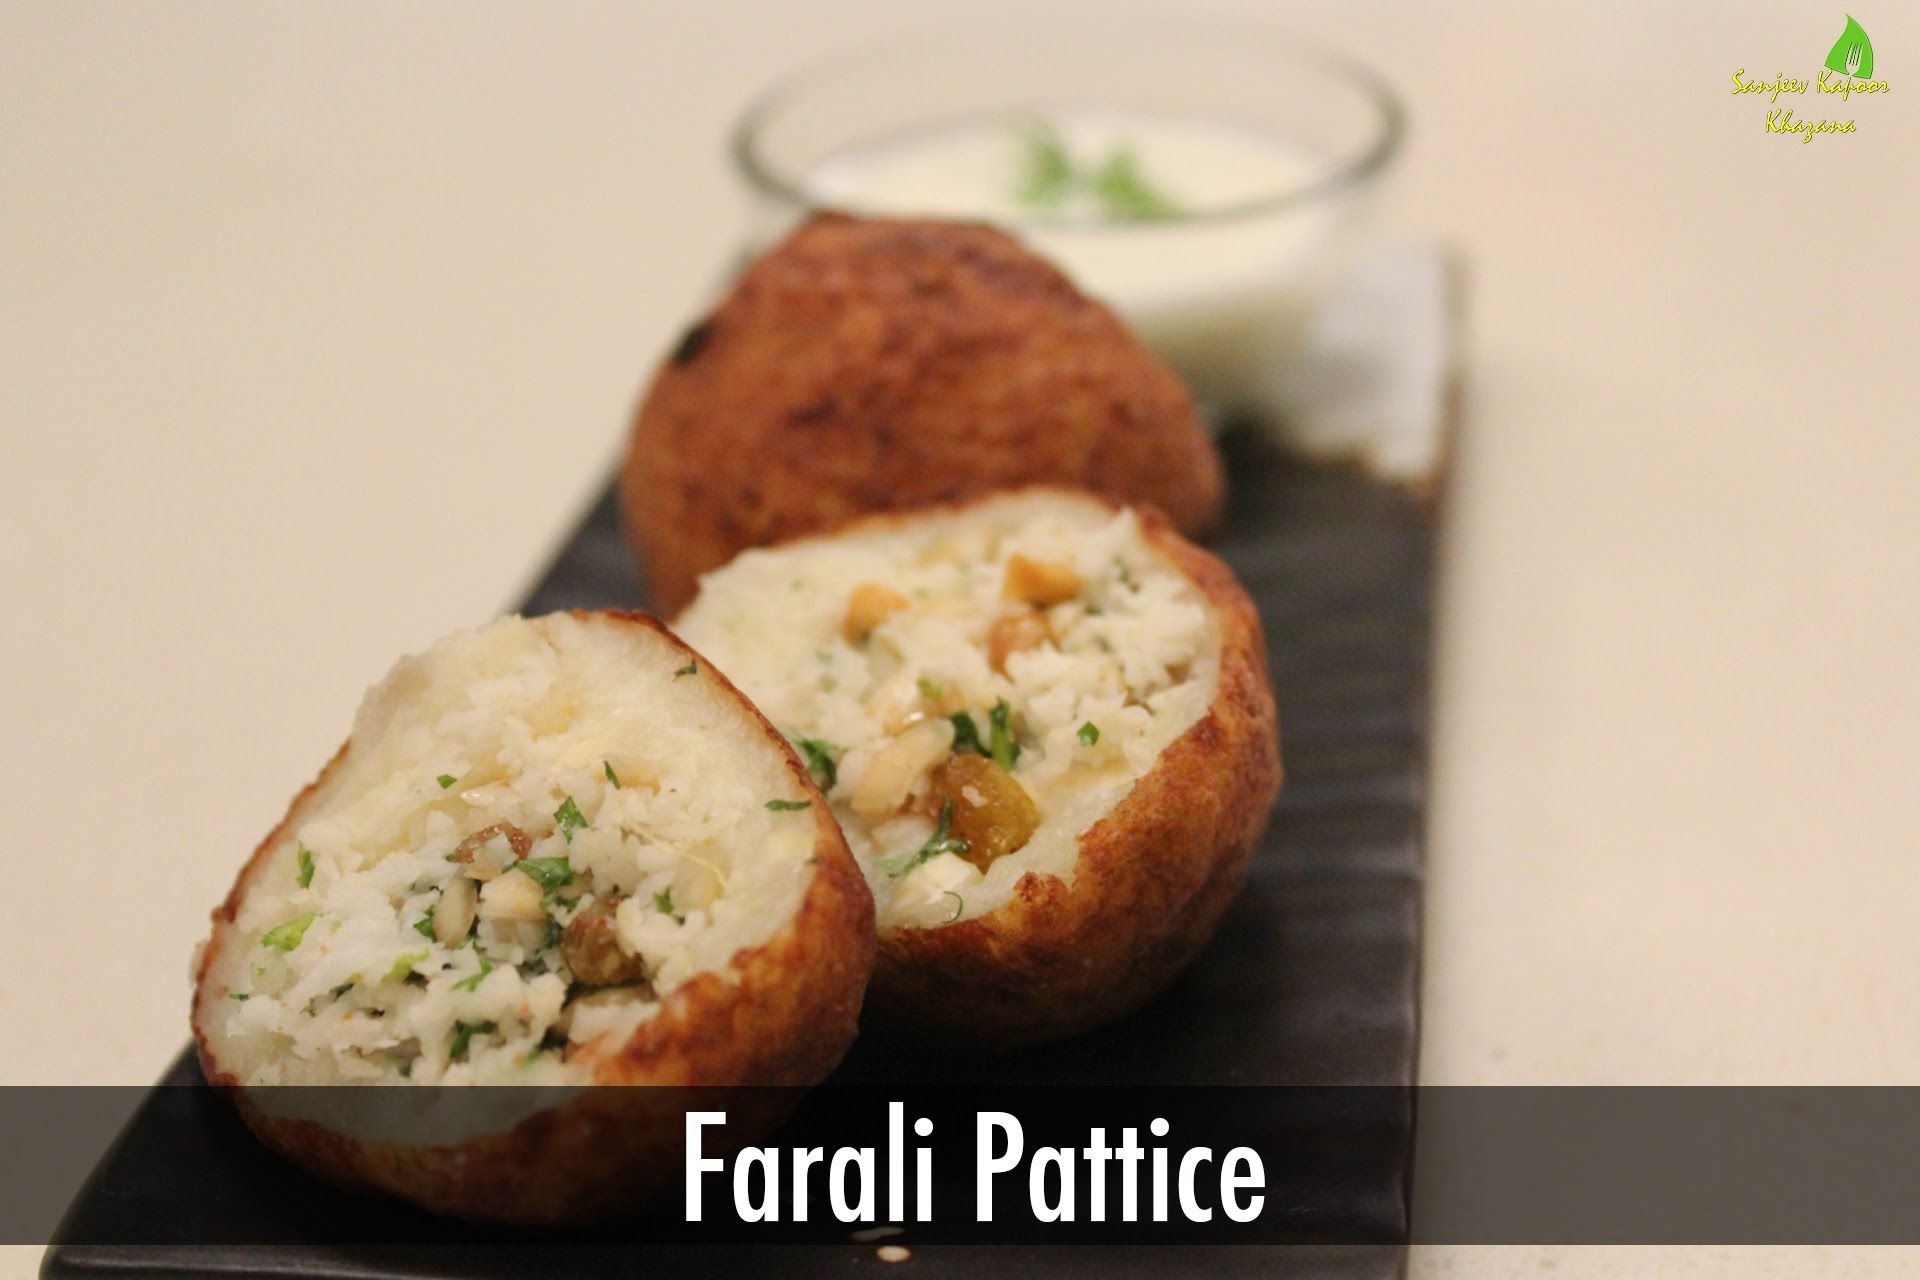 Farali pattice indian snacks recipes sanjeev kapoor khazana food farali pattice indian snacks recipes sanjeev kapoor khazana forumfinder Images